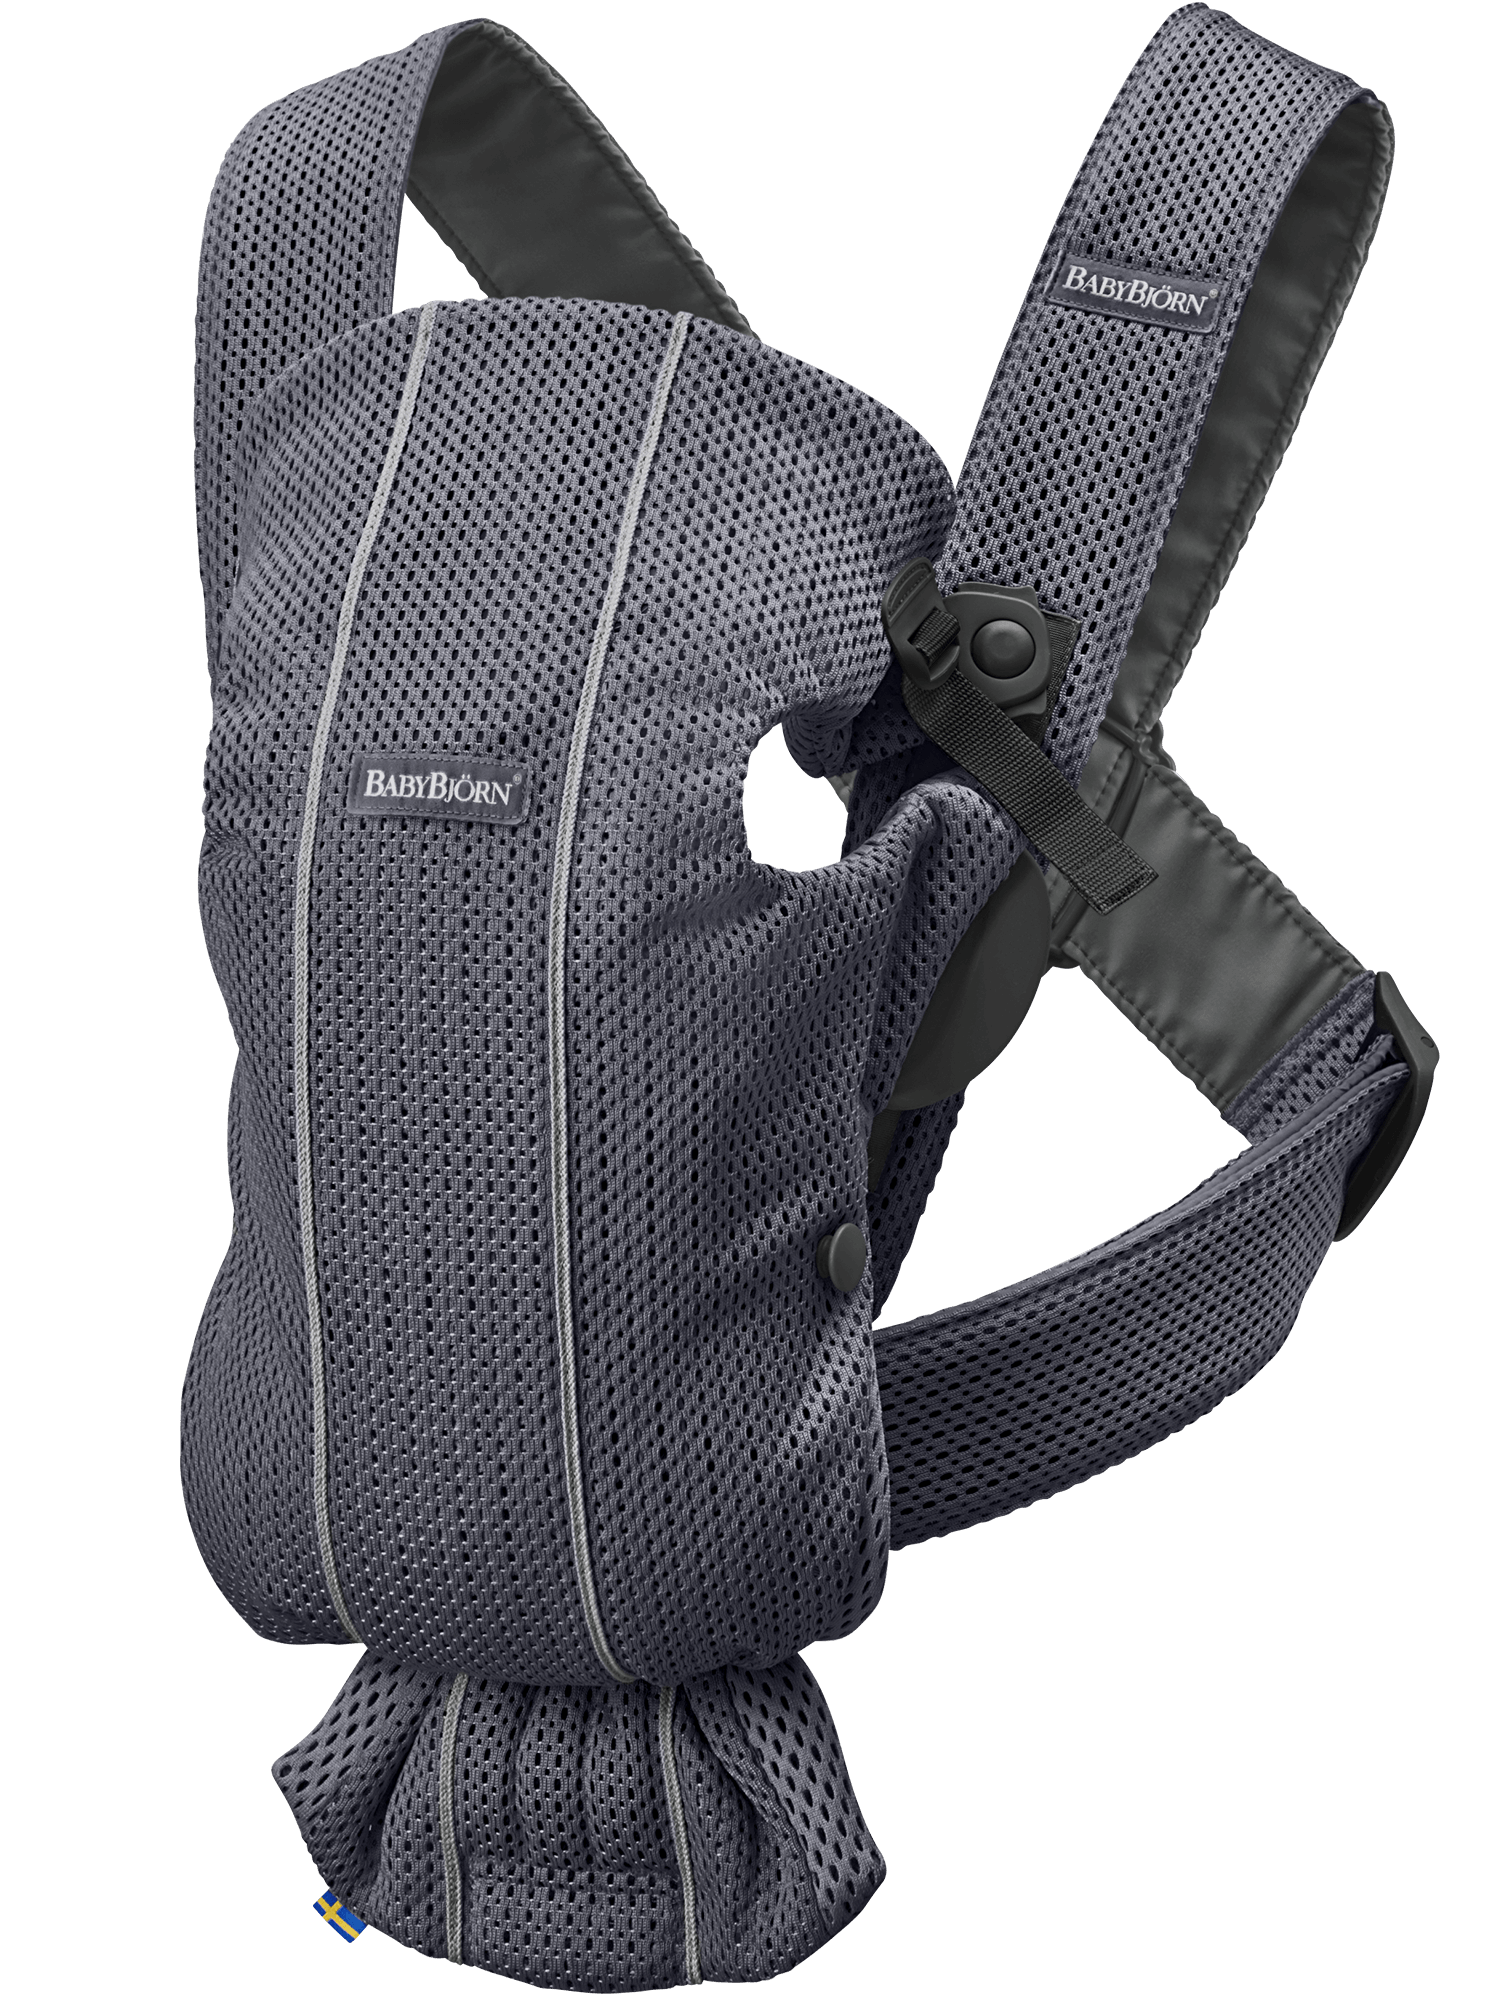 BabyBjorn BabyBjorn Carrier Mini